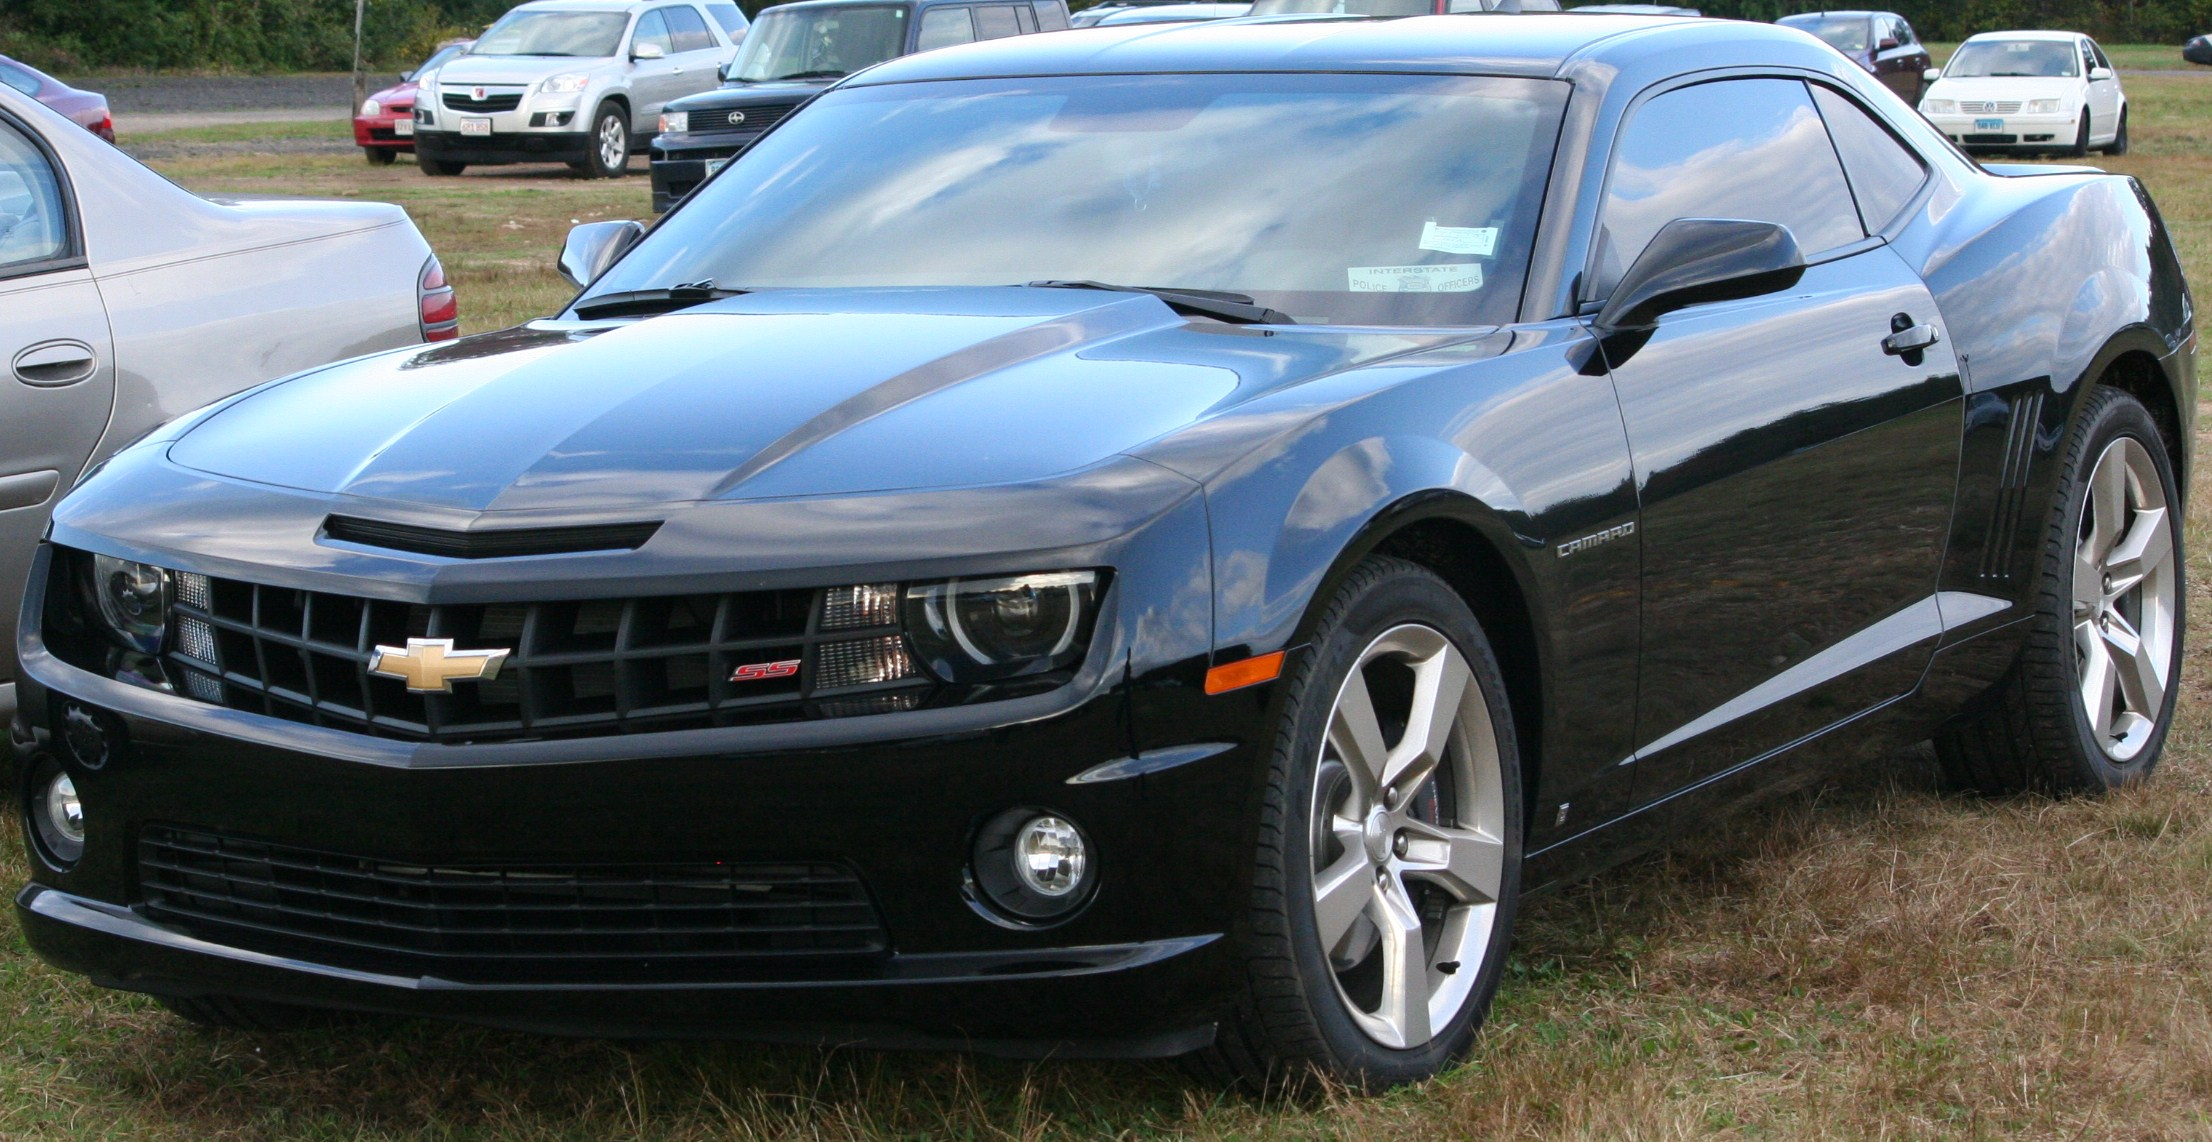 Camaro Ss 2010 Www Pixshark Com Images Galleries With A Bite